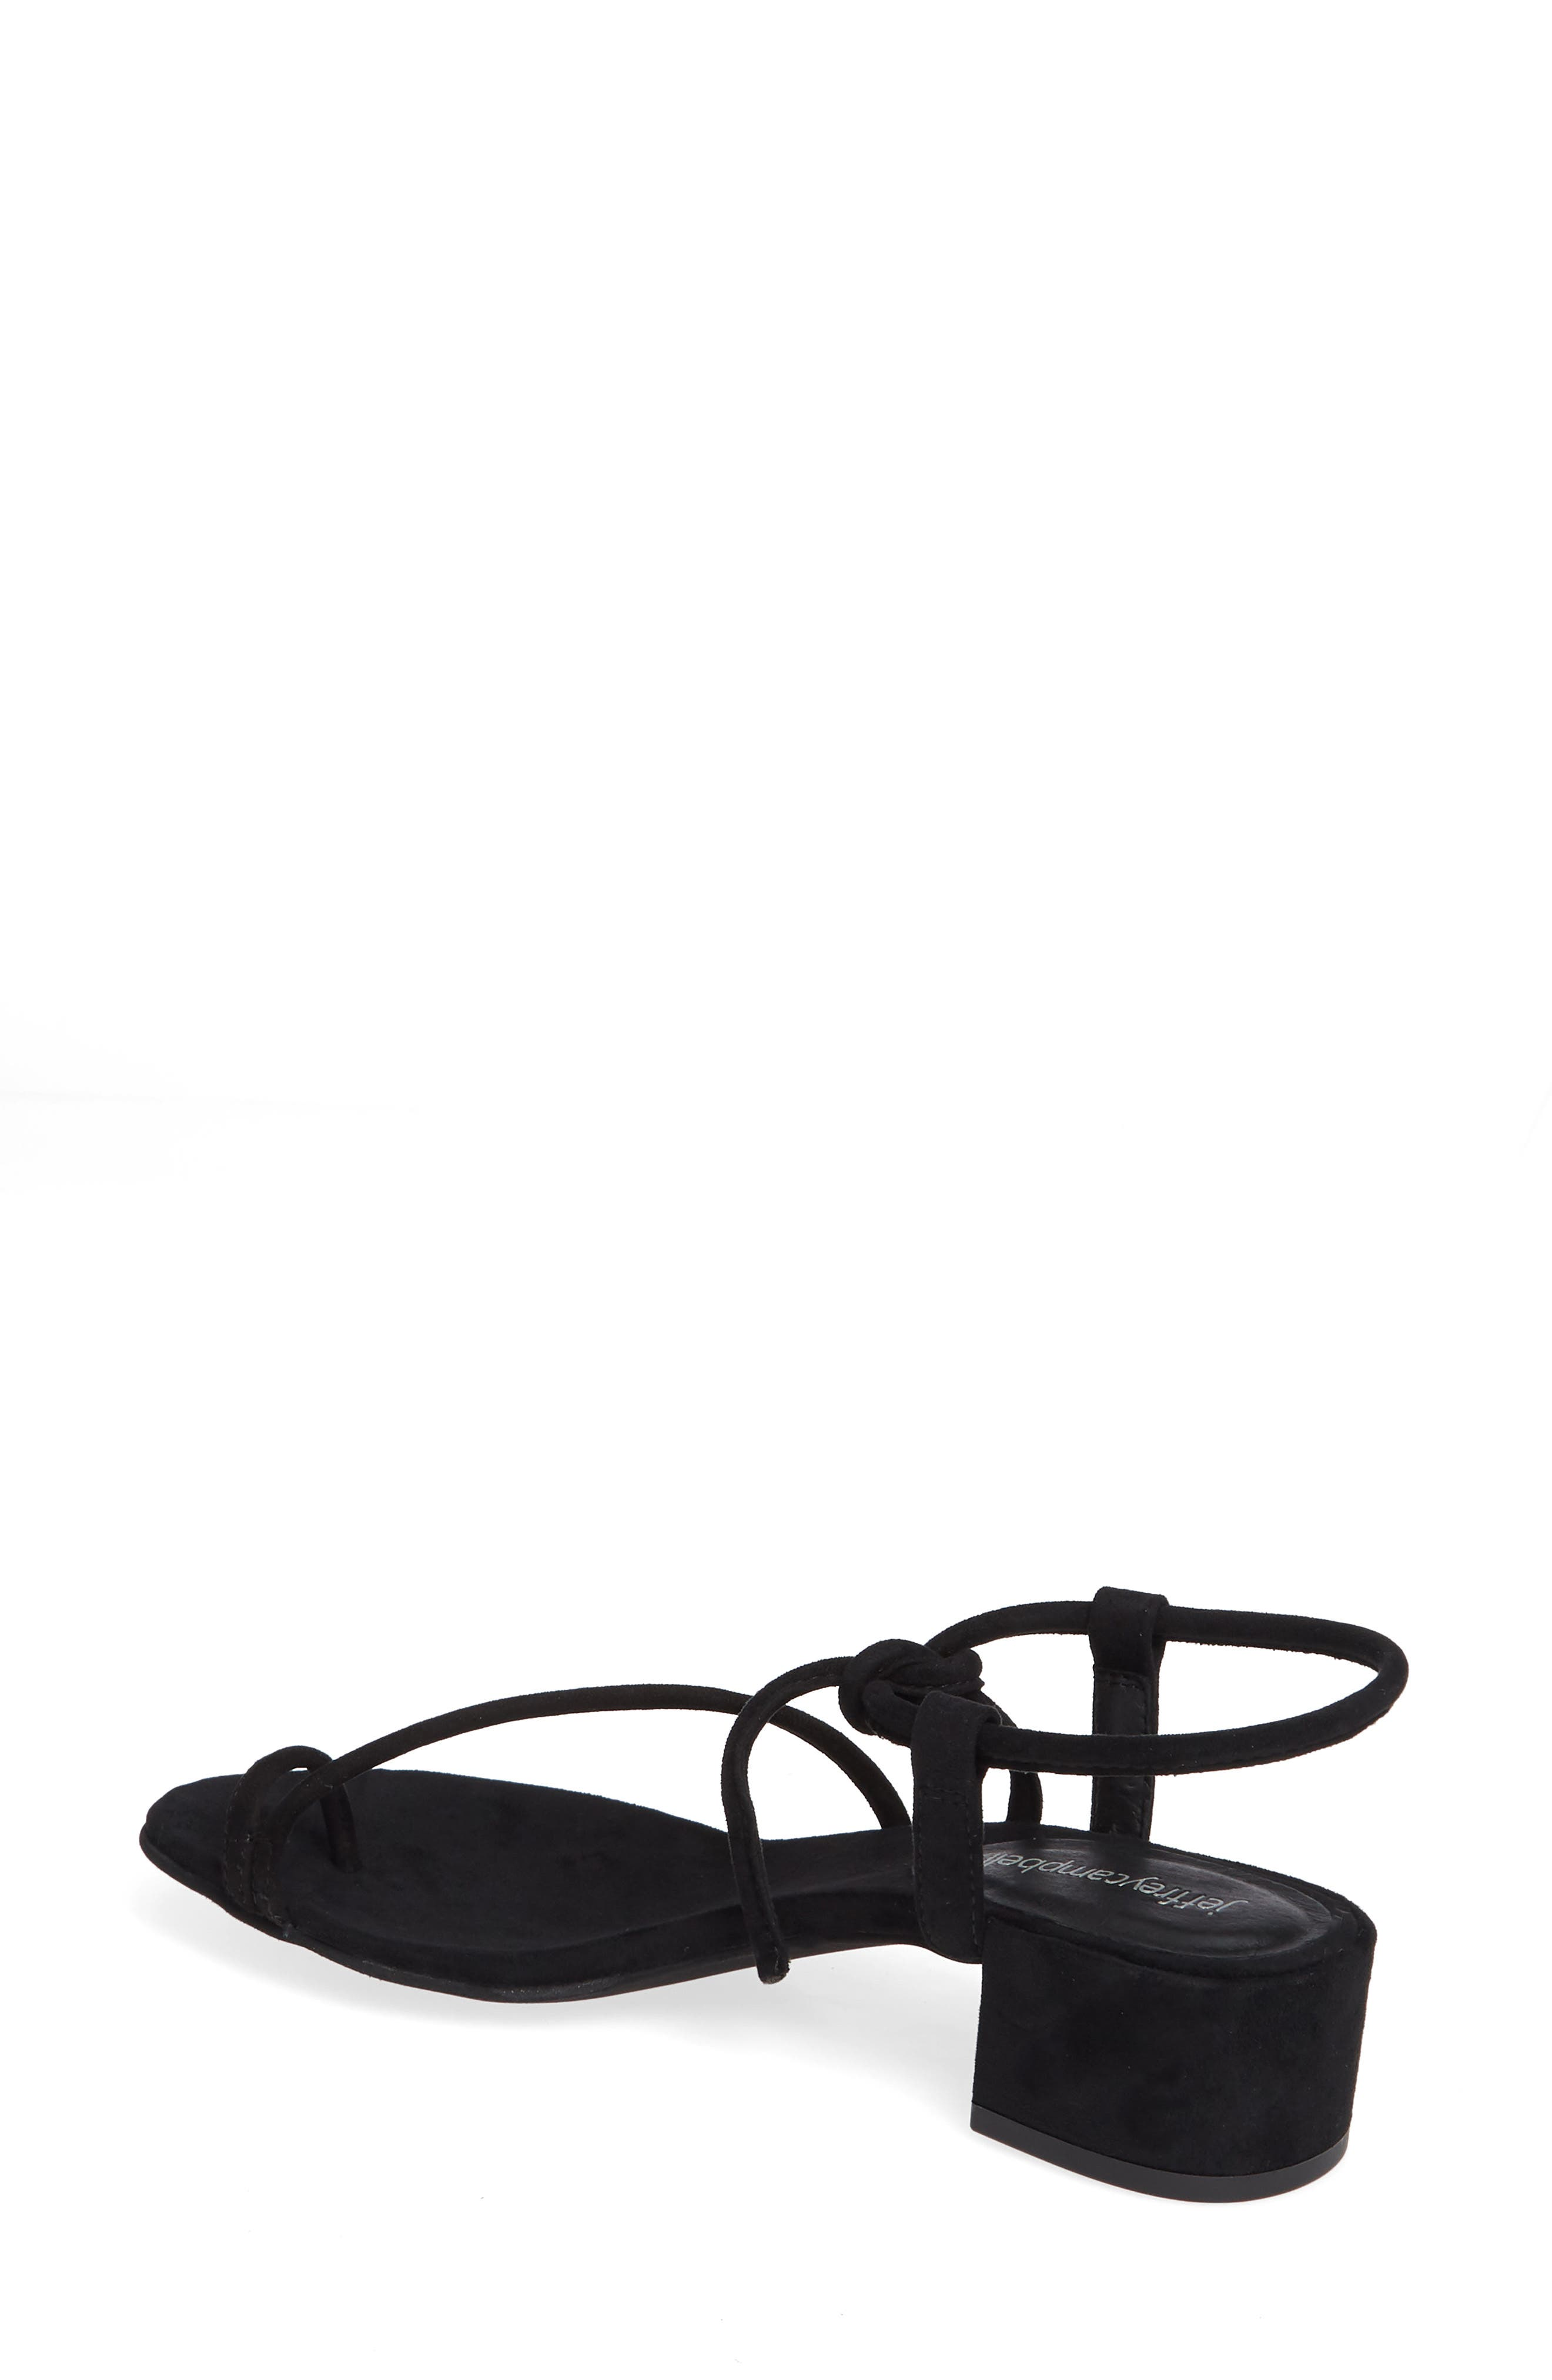 JEFFREY CAMPBELL, Strappy Sandal, Alternate thumbnail 2, color, 005